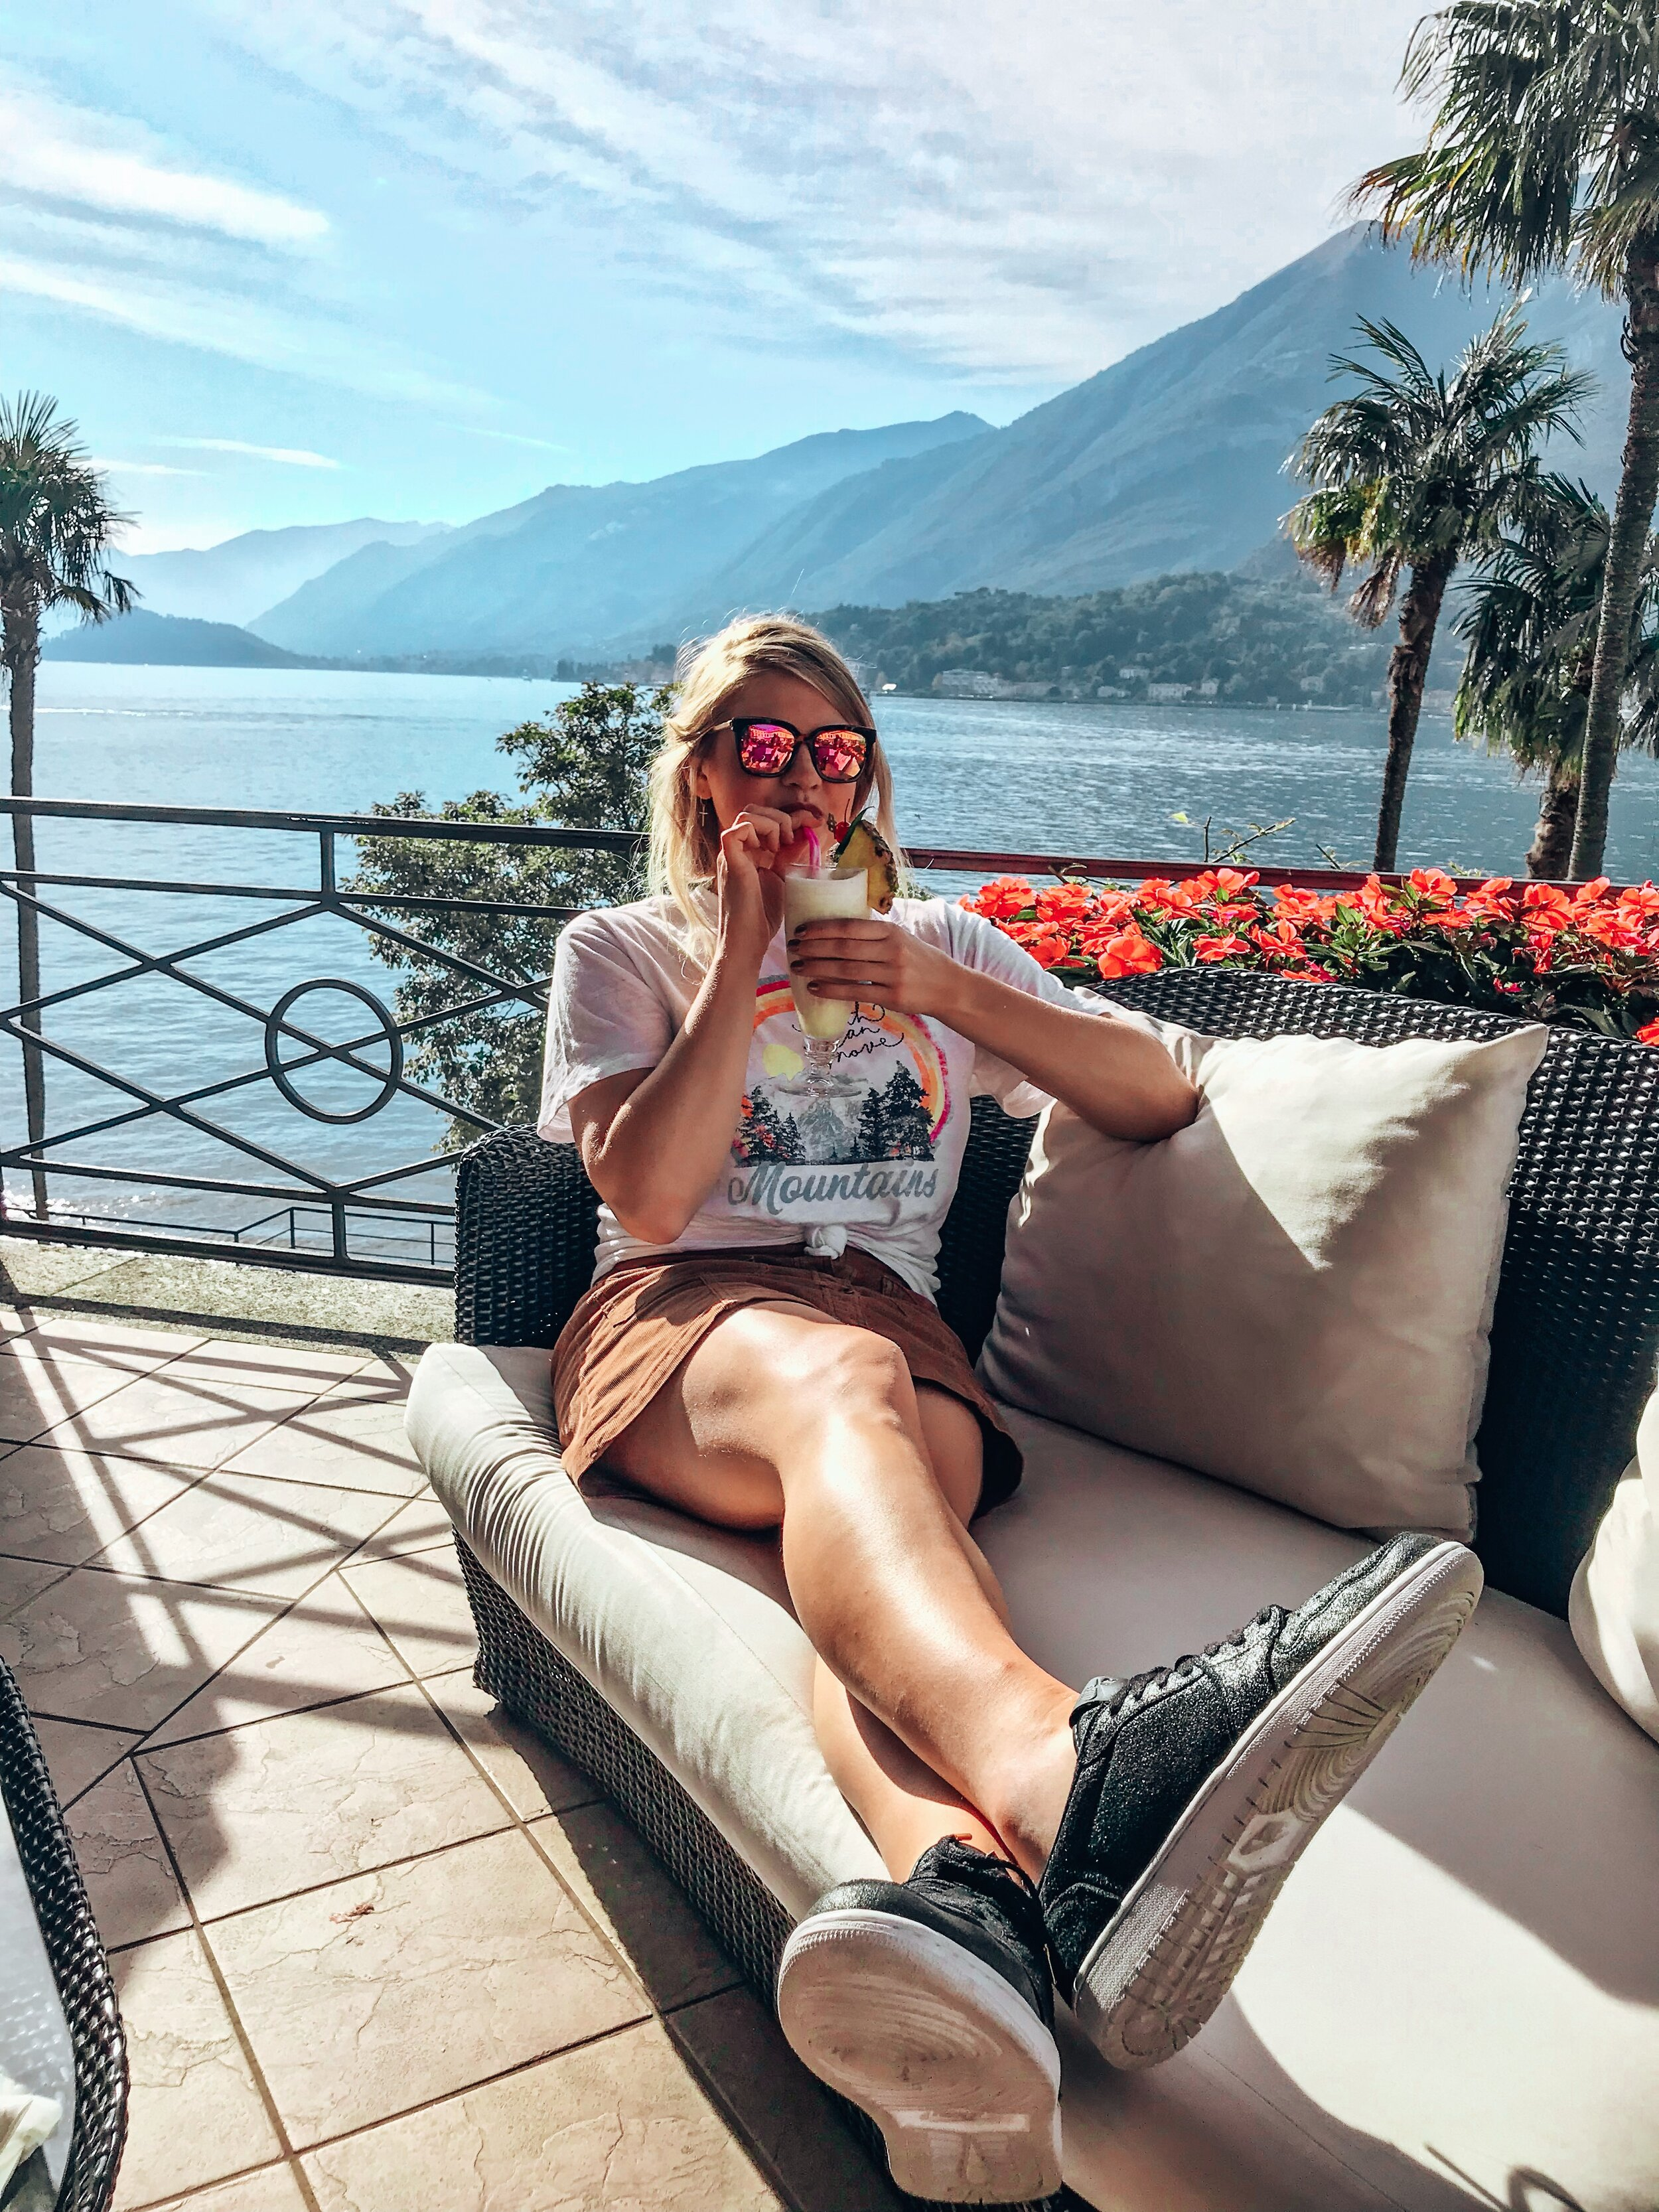 Enjoy the Views at Grand Hotel Villa Serbelloni - The views won't be the only thing you'll want to enjoy while at the Grand Hotel Villa Serbelloni…grab a cocktail with your bestie and relax some at Travel & Leisure's Number One Hotel in Italy 2019. Pictured: the best and most expensive piña colada I've ever had!